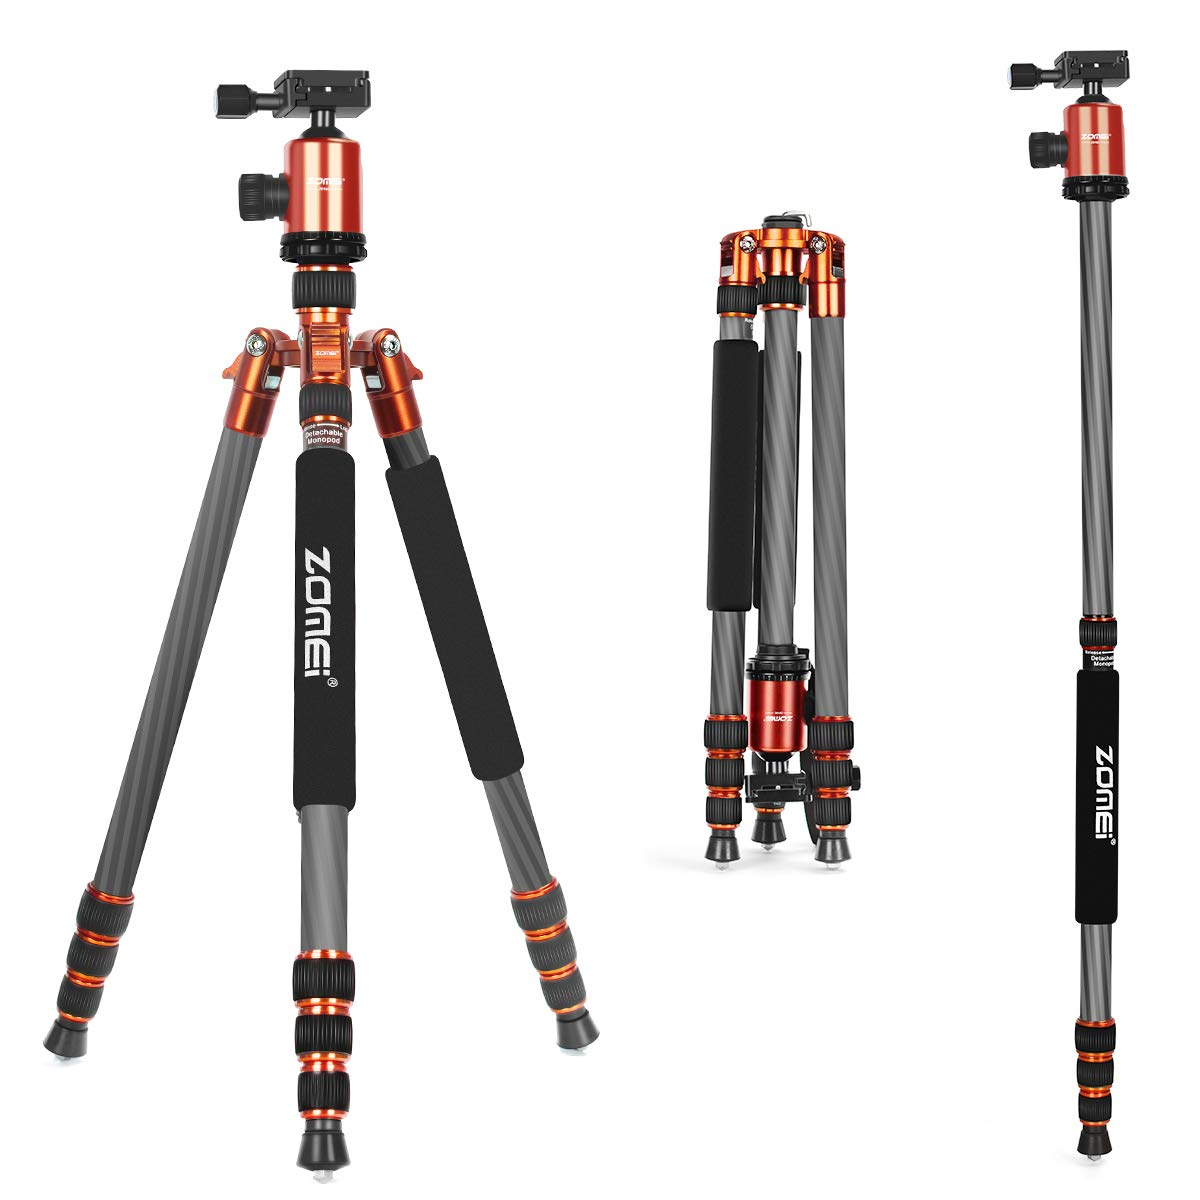 ZoMei Carbon Fiber Tripod,Camera Tripod for dslr,66.5'' Camera Tripod Monopod with 360 Degree Ball Head,Load up to 33 pounds (orange) by ZoMei